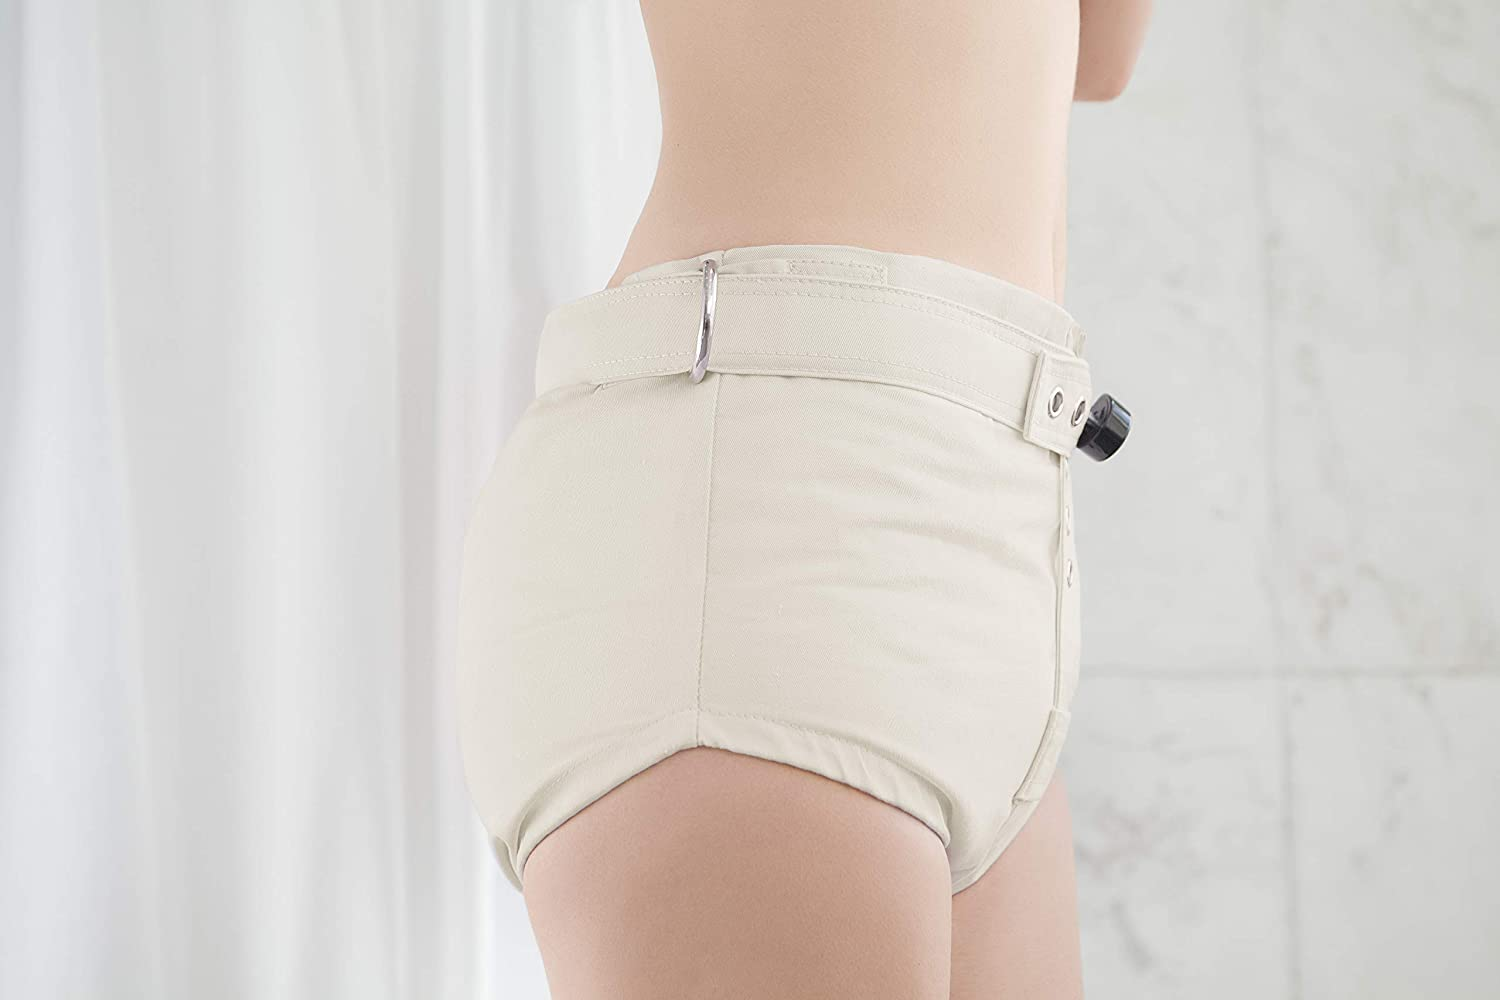 Lockable Diaper Cover Pants Anti Diaper Removal ABDL Adult Baby